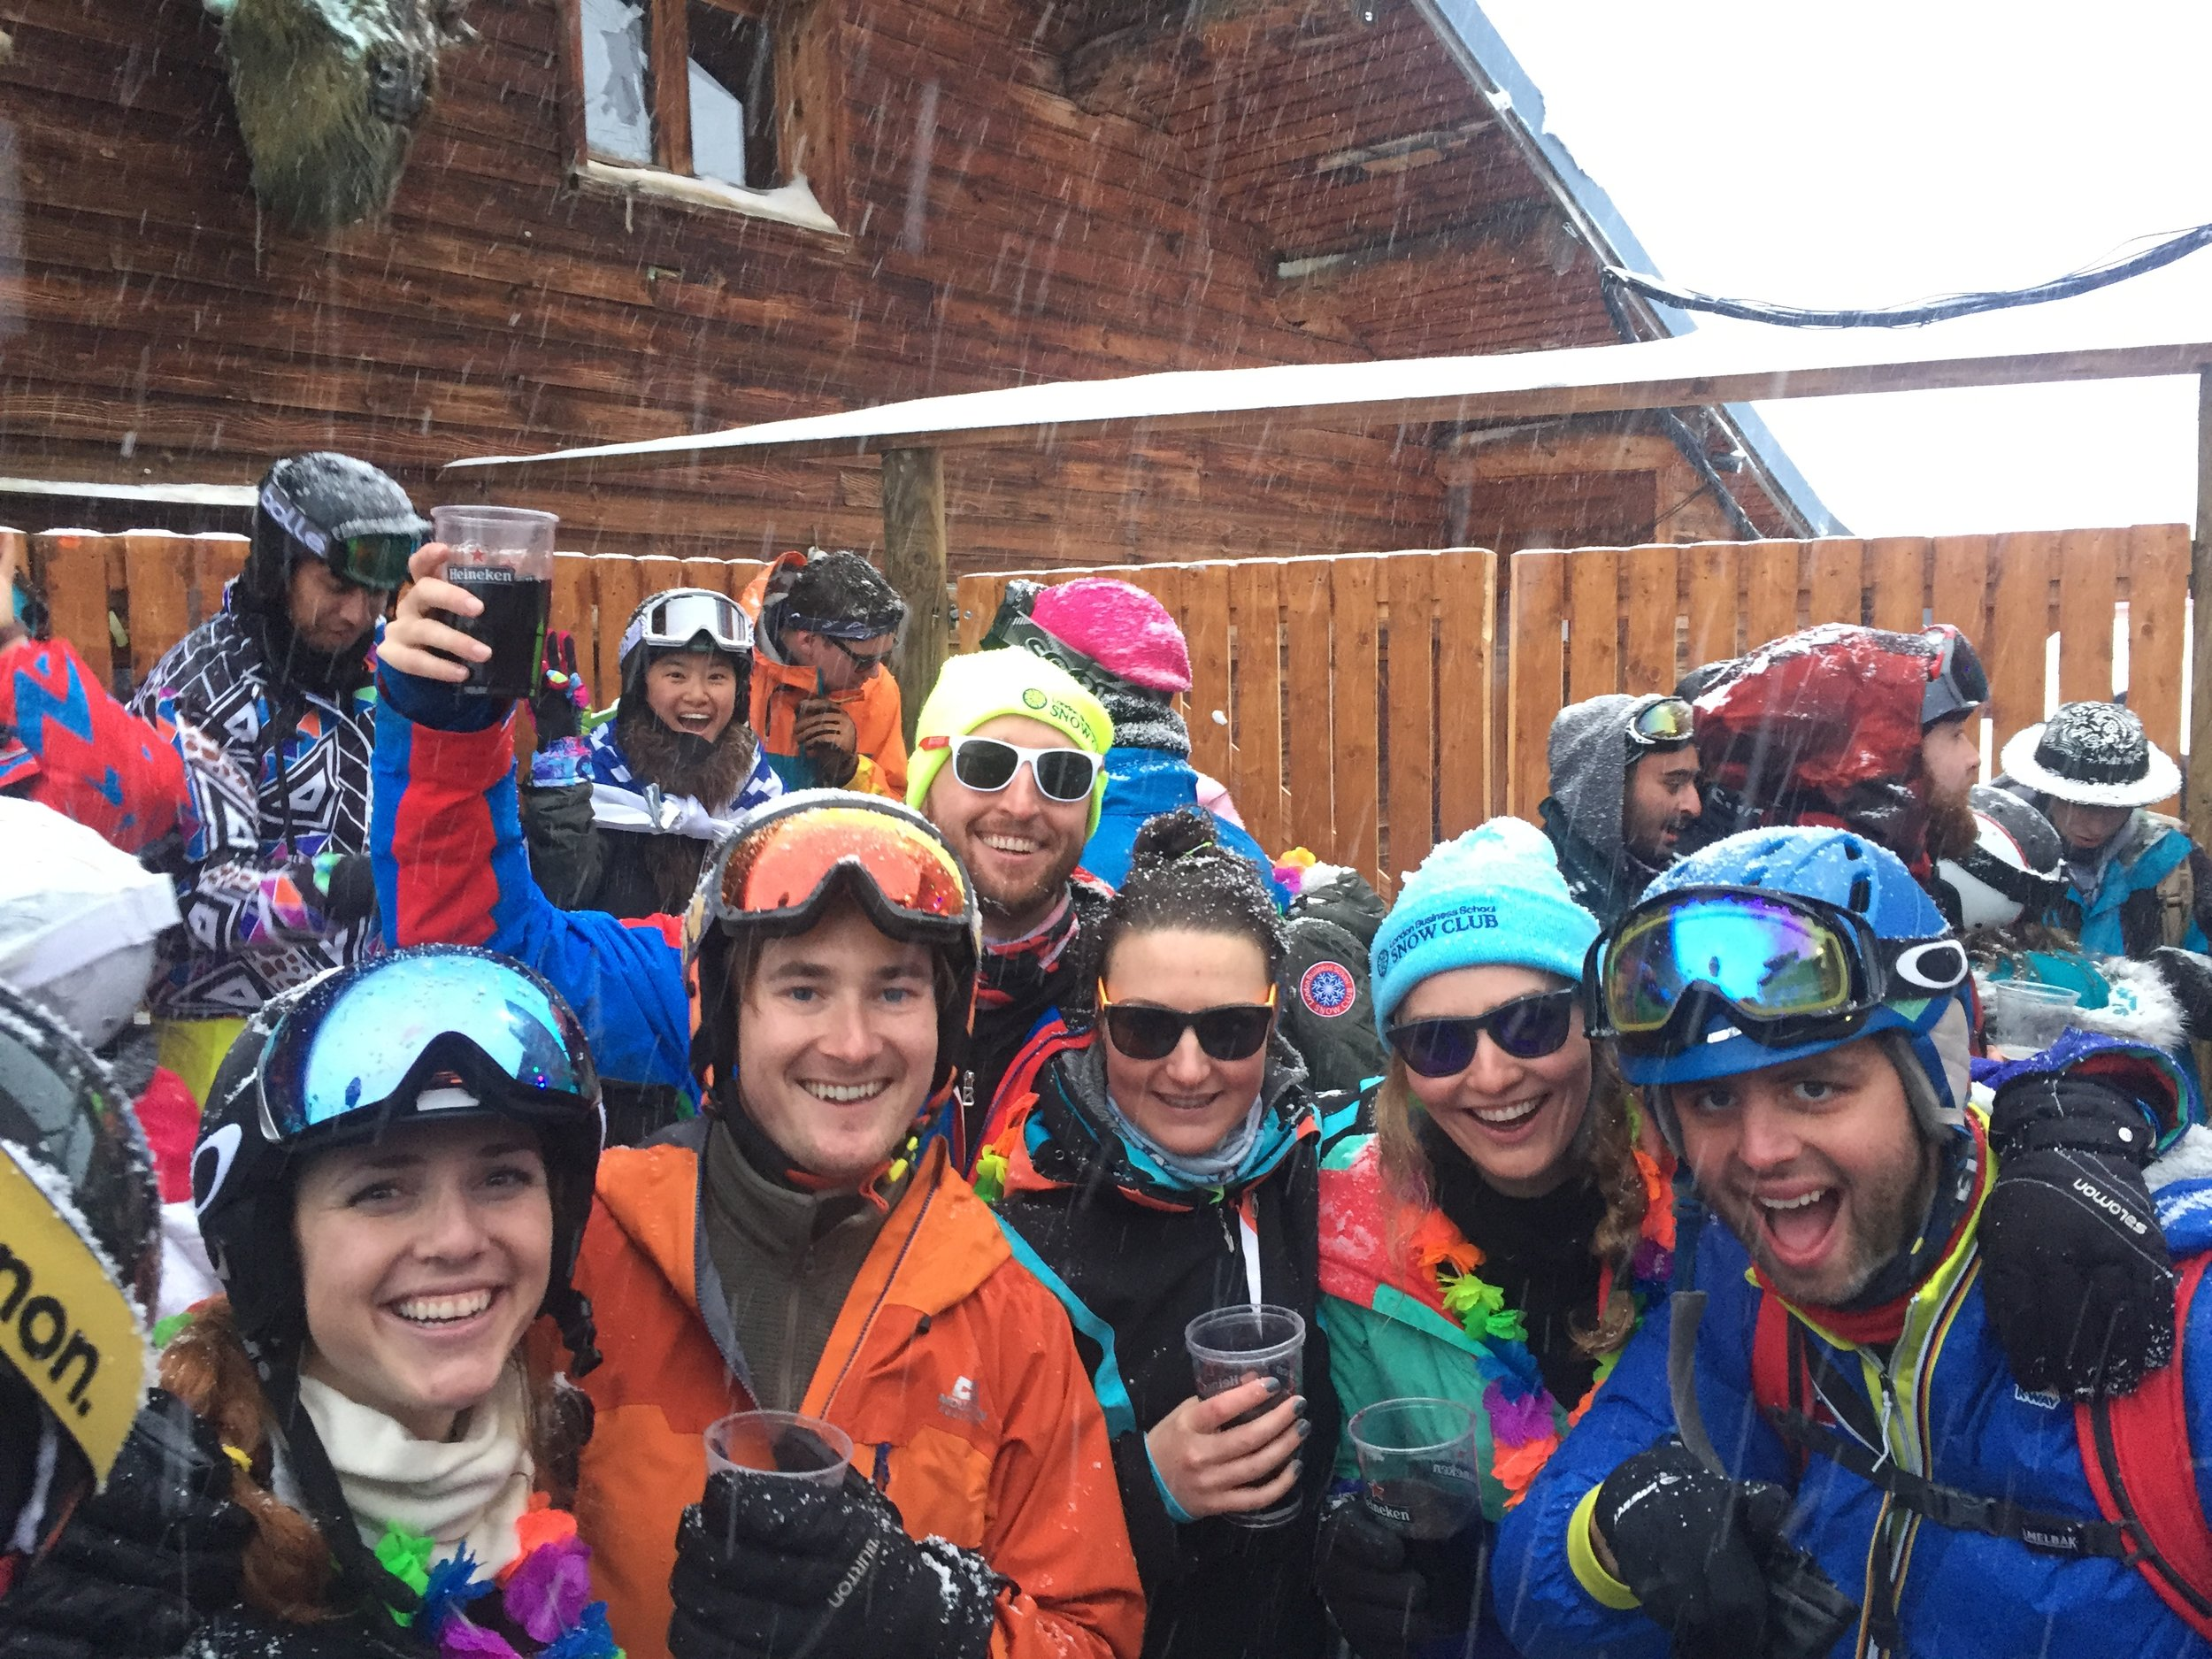 LBS MBAs on a ski trip, at the legendary apres ski 360 Bar in Val Thorens, France. From left to right, Mel Faxon, Adam Johnson, Billy Jones, Alex Devan, Harriet Stibbard and James Boyers.